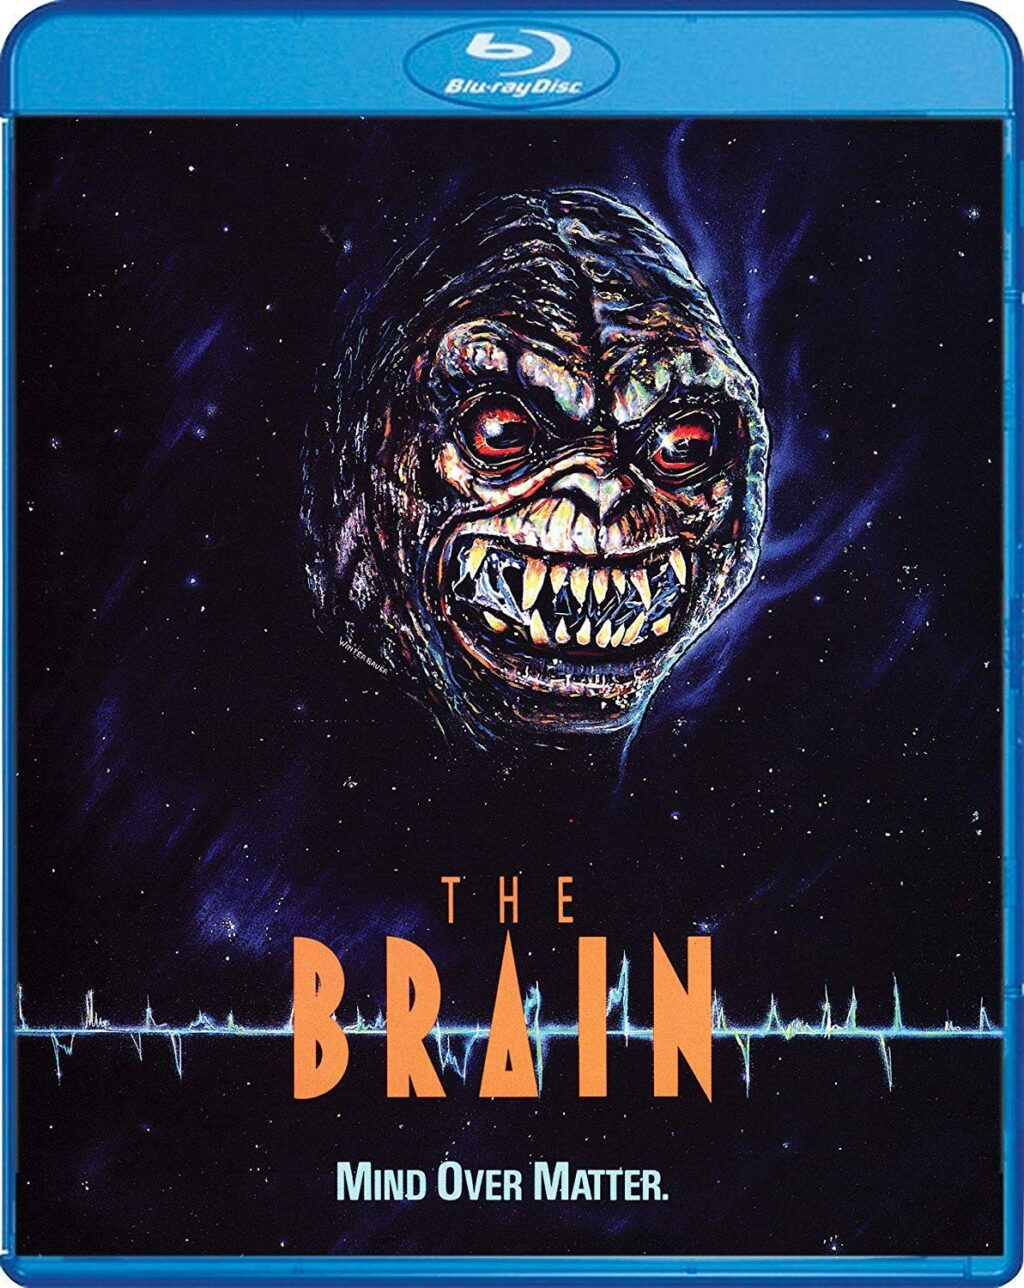 the brain blu 1024x1288 - THE BRAIN Blu-ray Review - Use Yours And Check Out This '80s Canadian Creature Feature